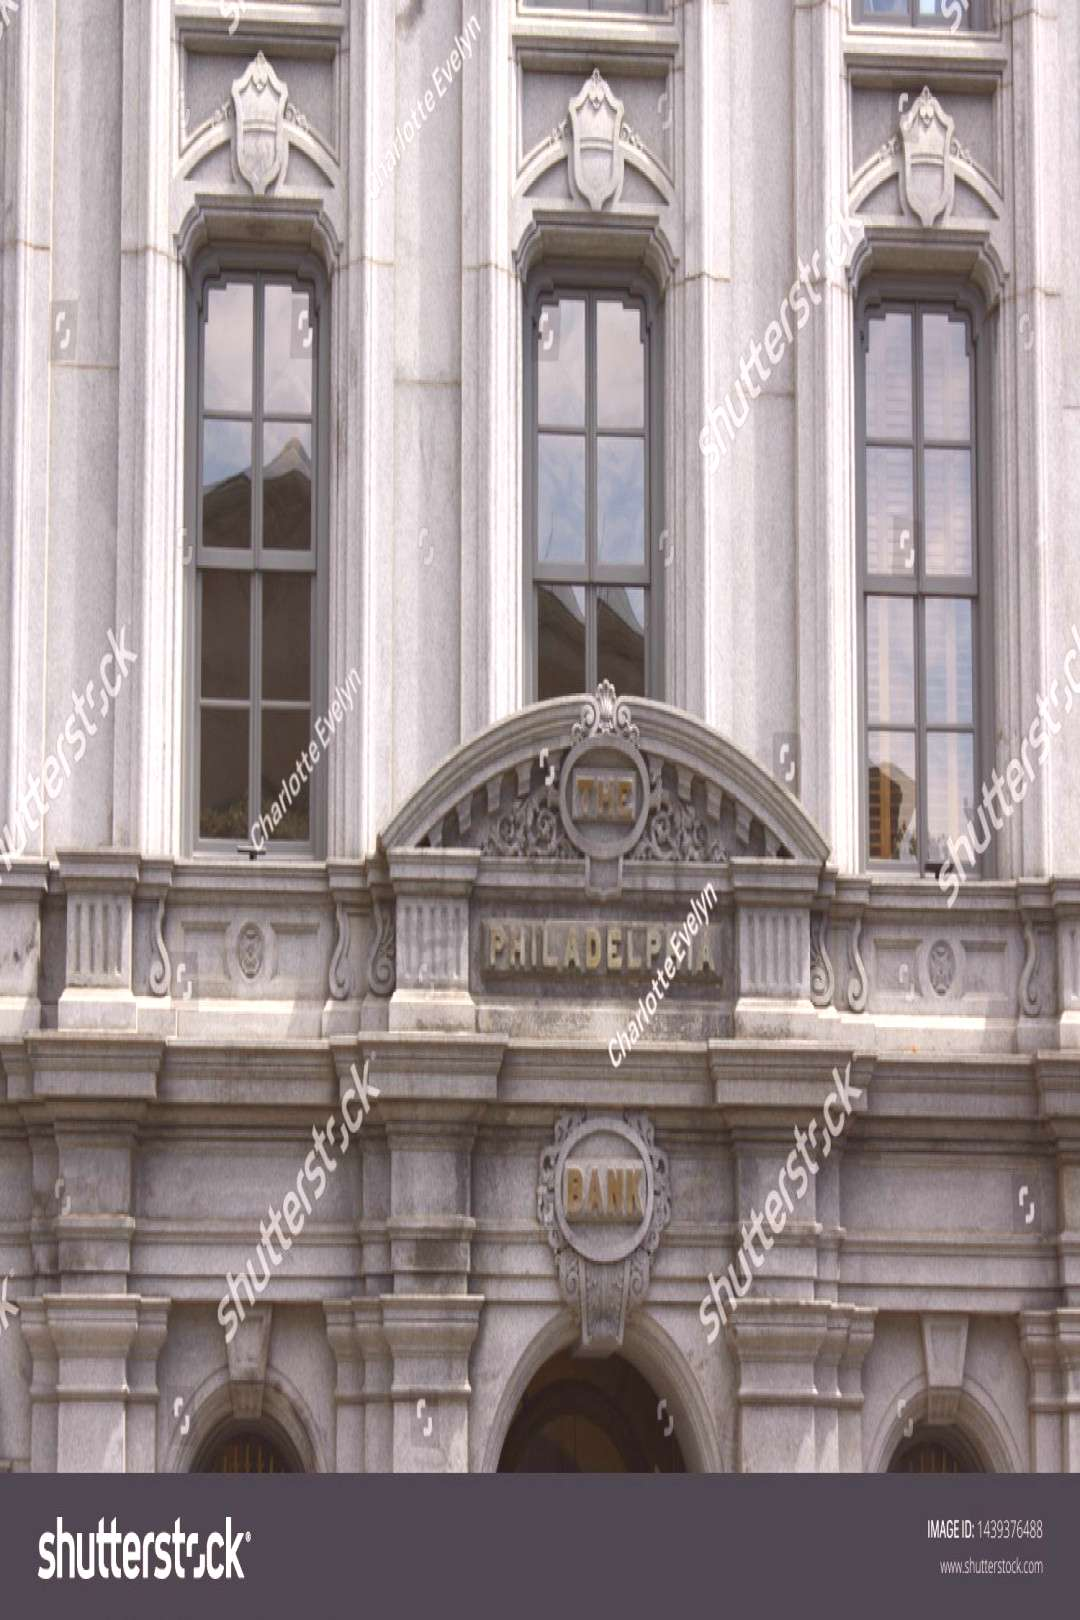 Philadelphia, Pennsylvania, United States - June 24, 2019: Closeup of the sign on the Bank Building